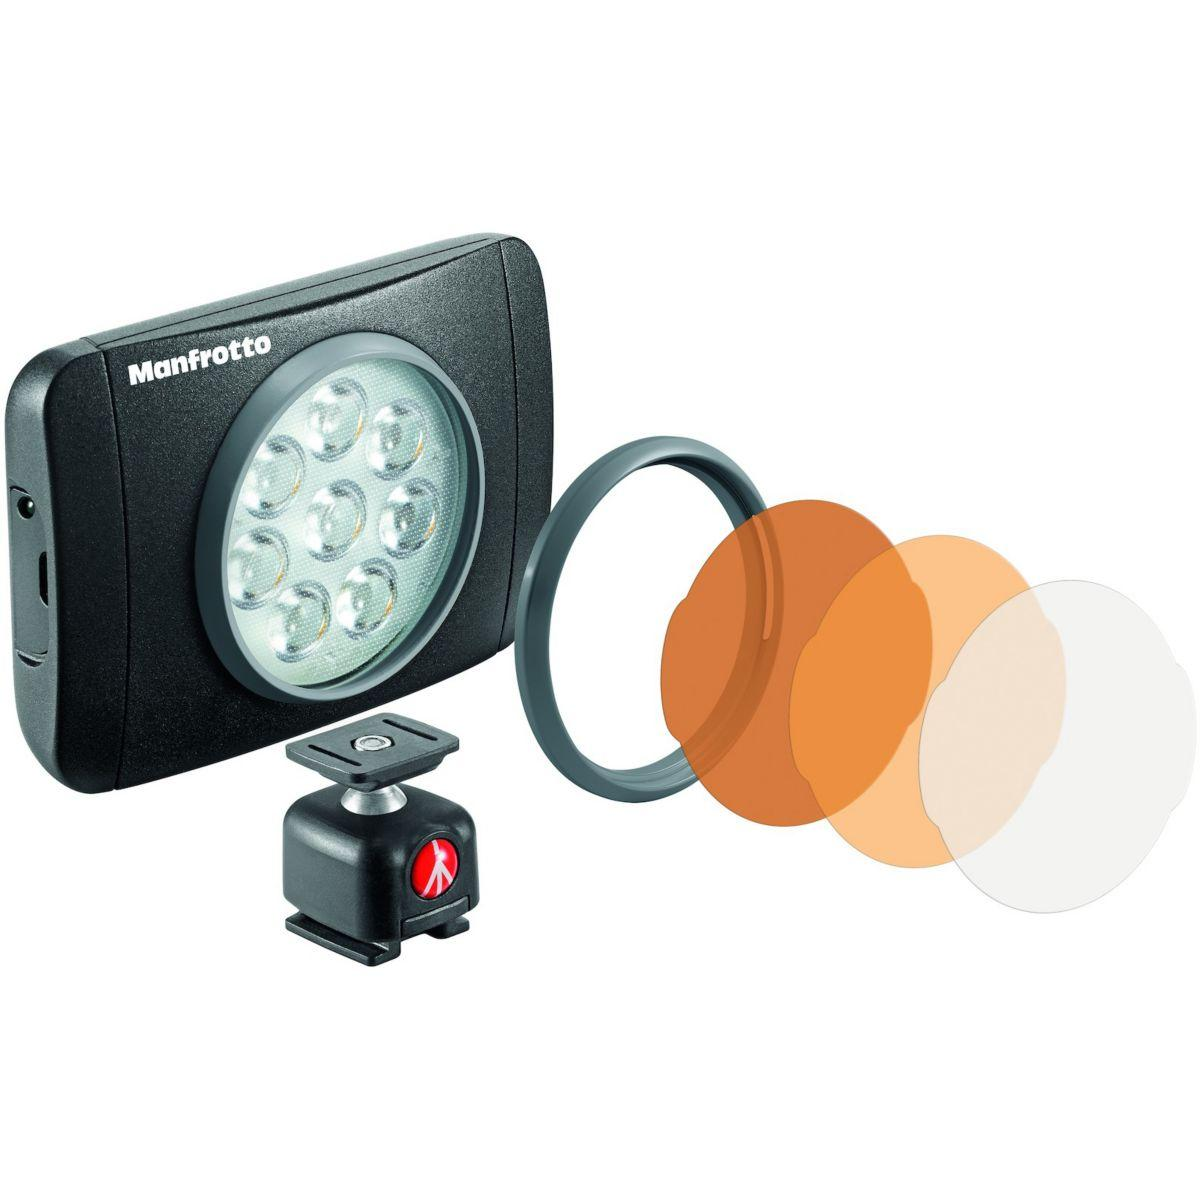 Torche manfrotto 8 led 550 lumens lumie muse + rotule - 2% de ...